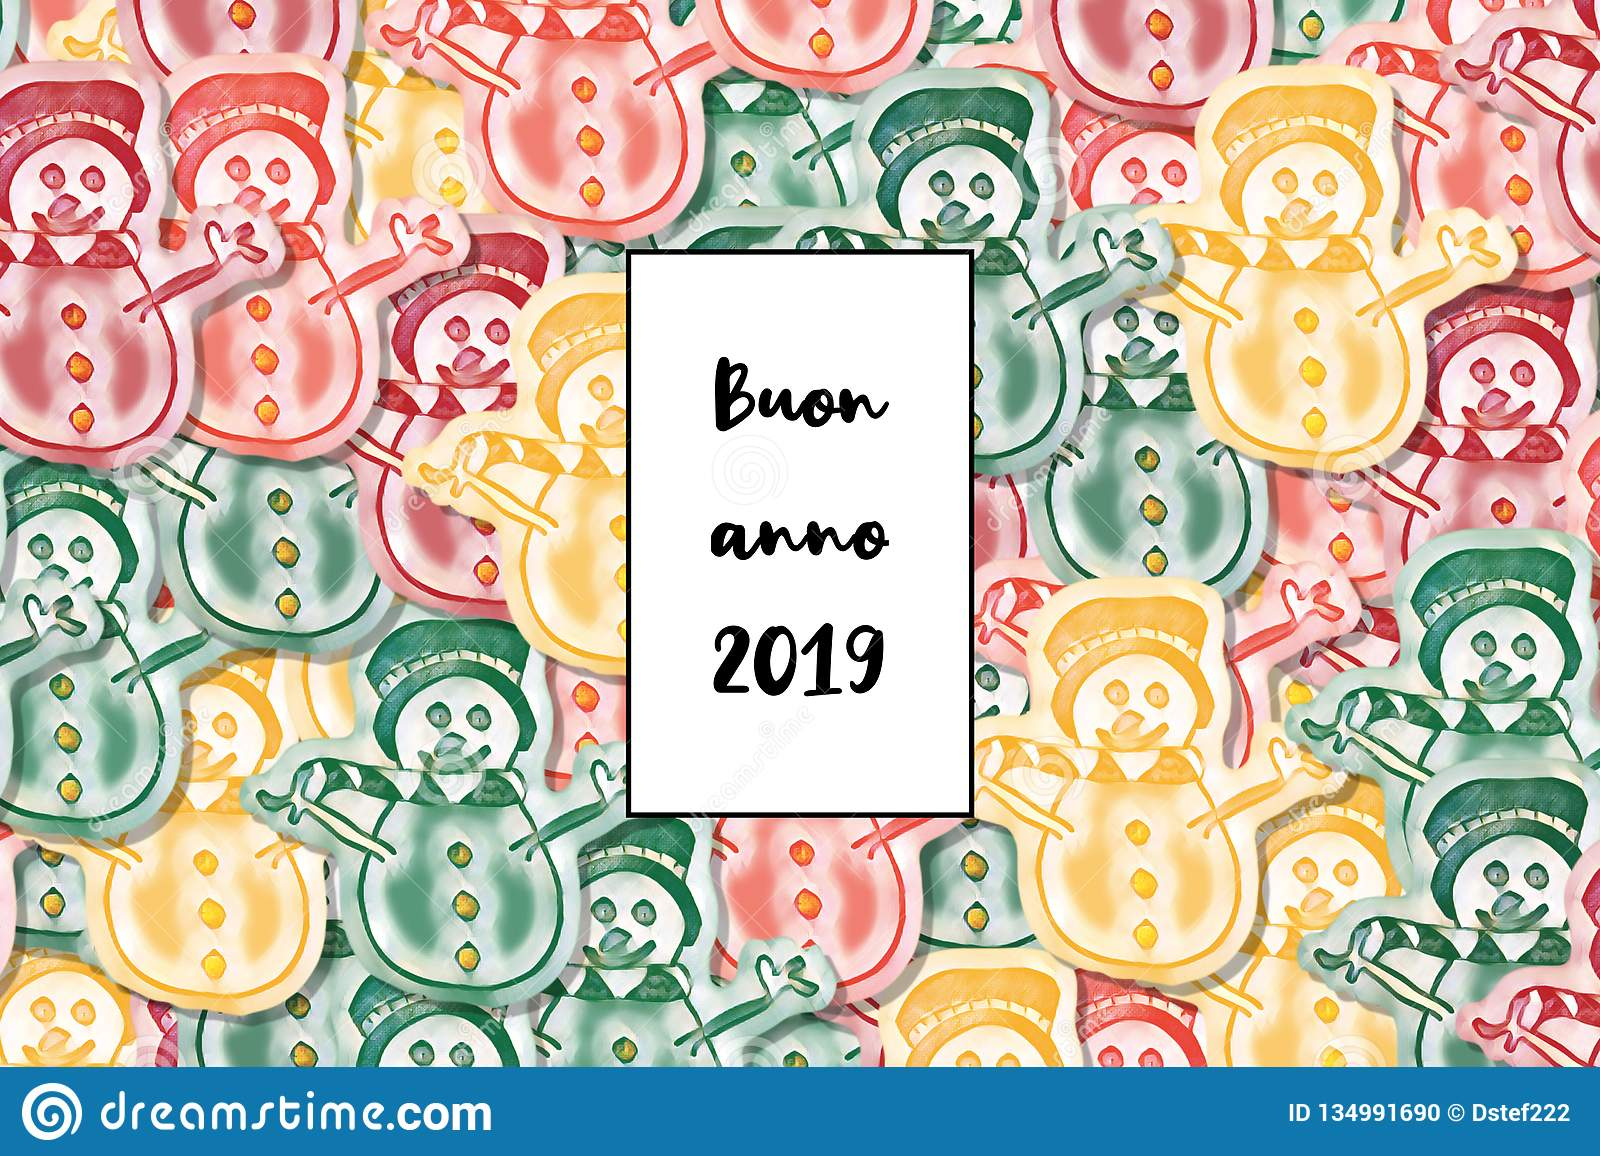 Buon anno 2019 card Happy New Year in italian with colored snowman as a background